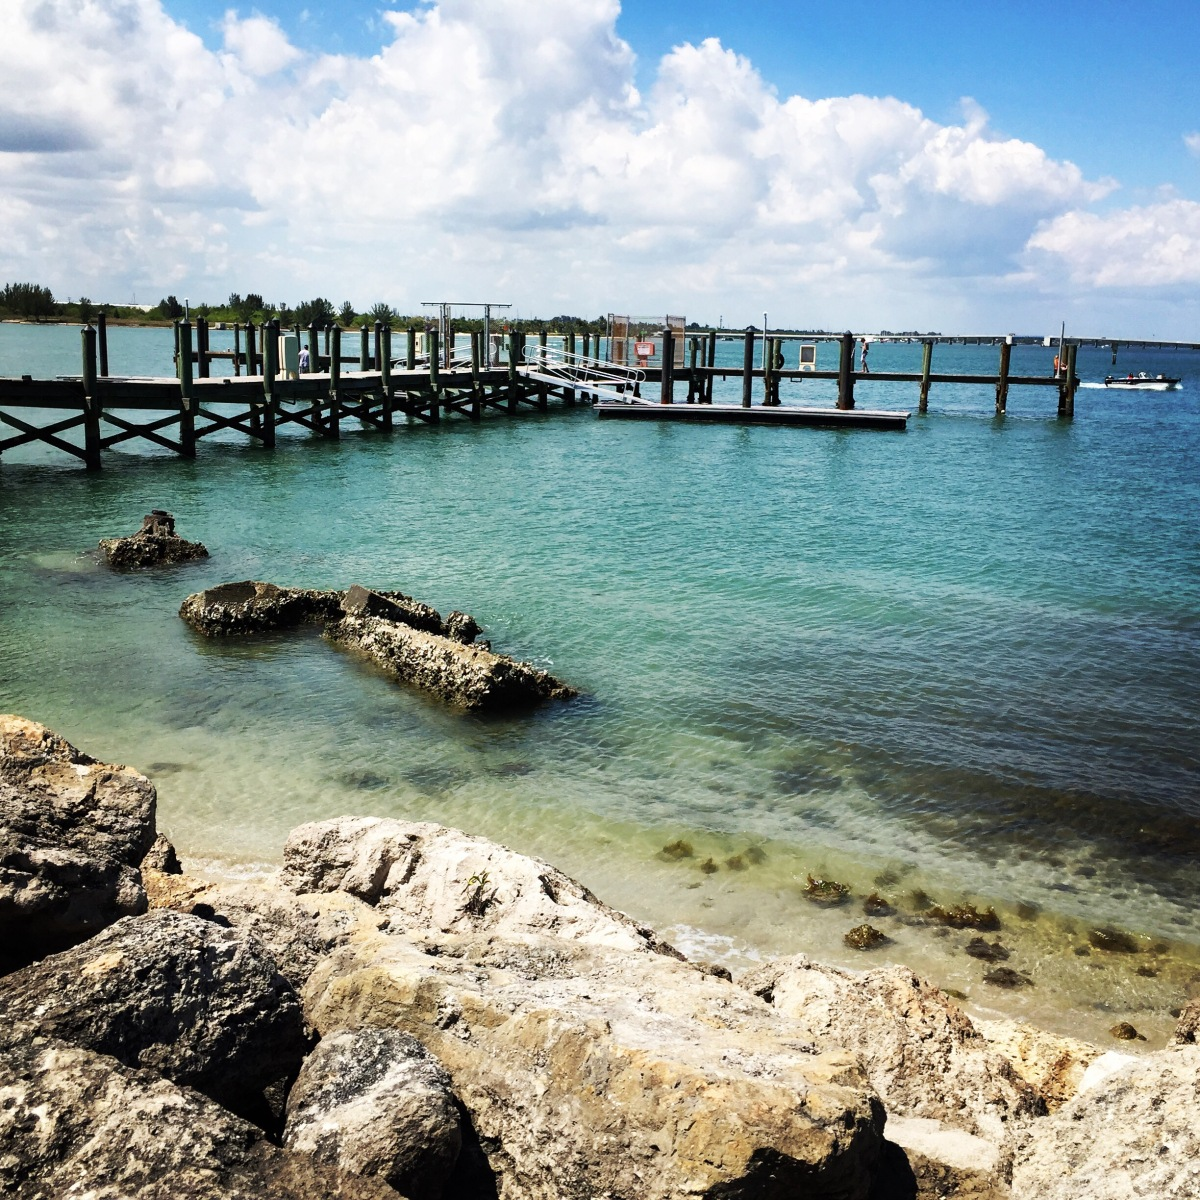 Summerlin Dock and Park, Fort Pierce